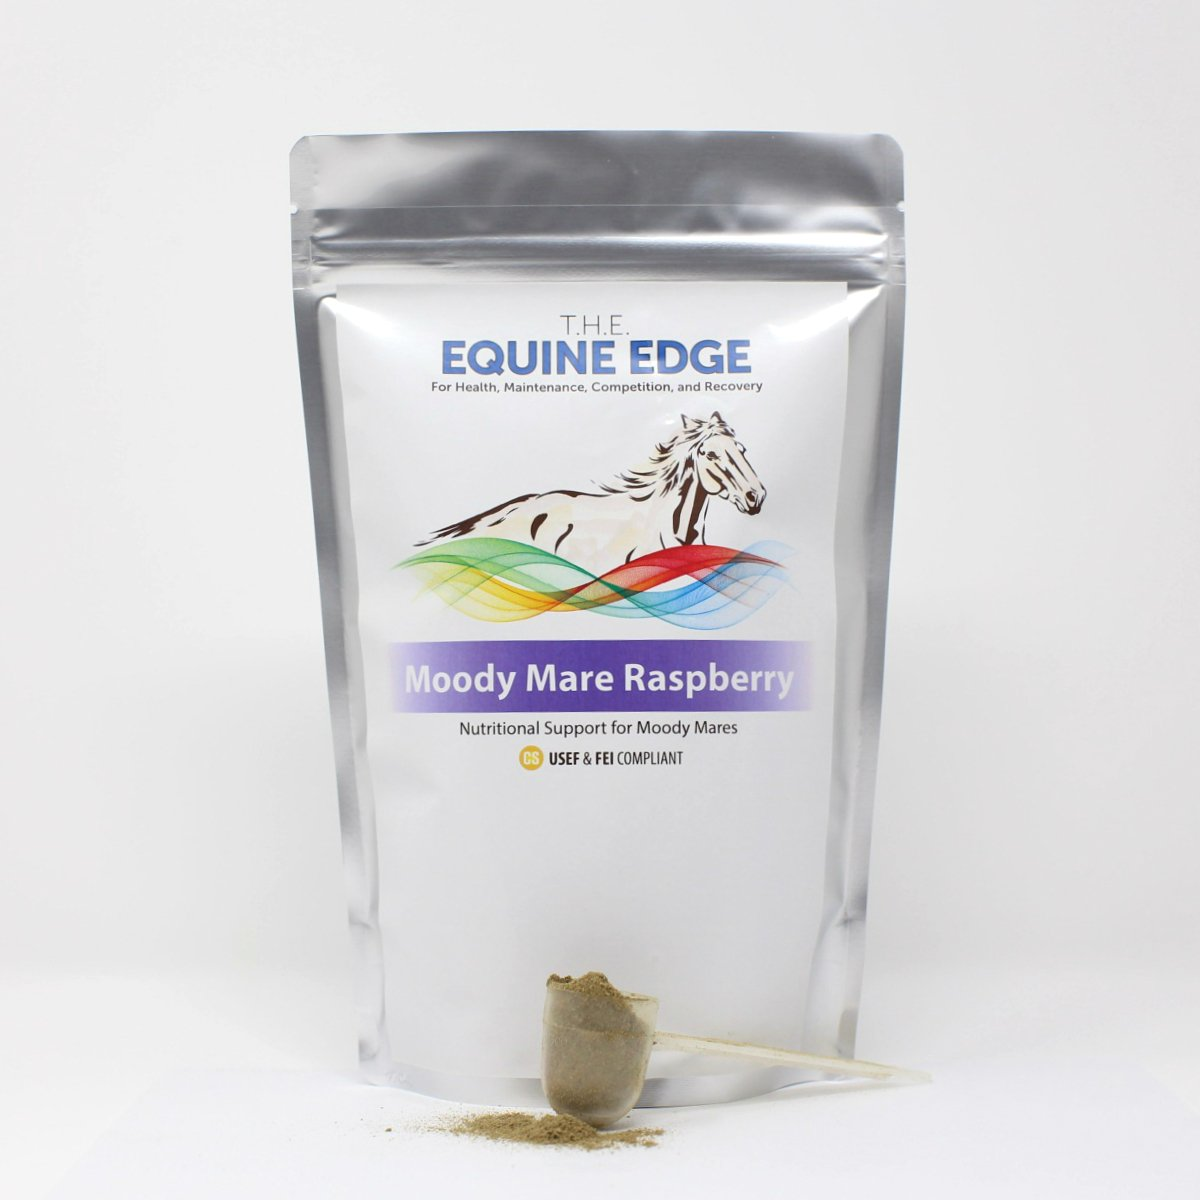 Moody Mare Raspberry - Pure Organic Raspberry Leaf for Calming by T.H.E. Equine Edge (Image #1)